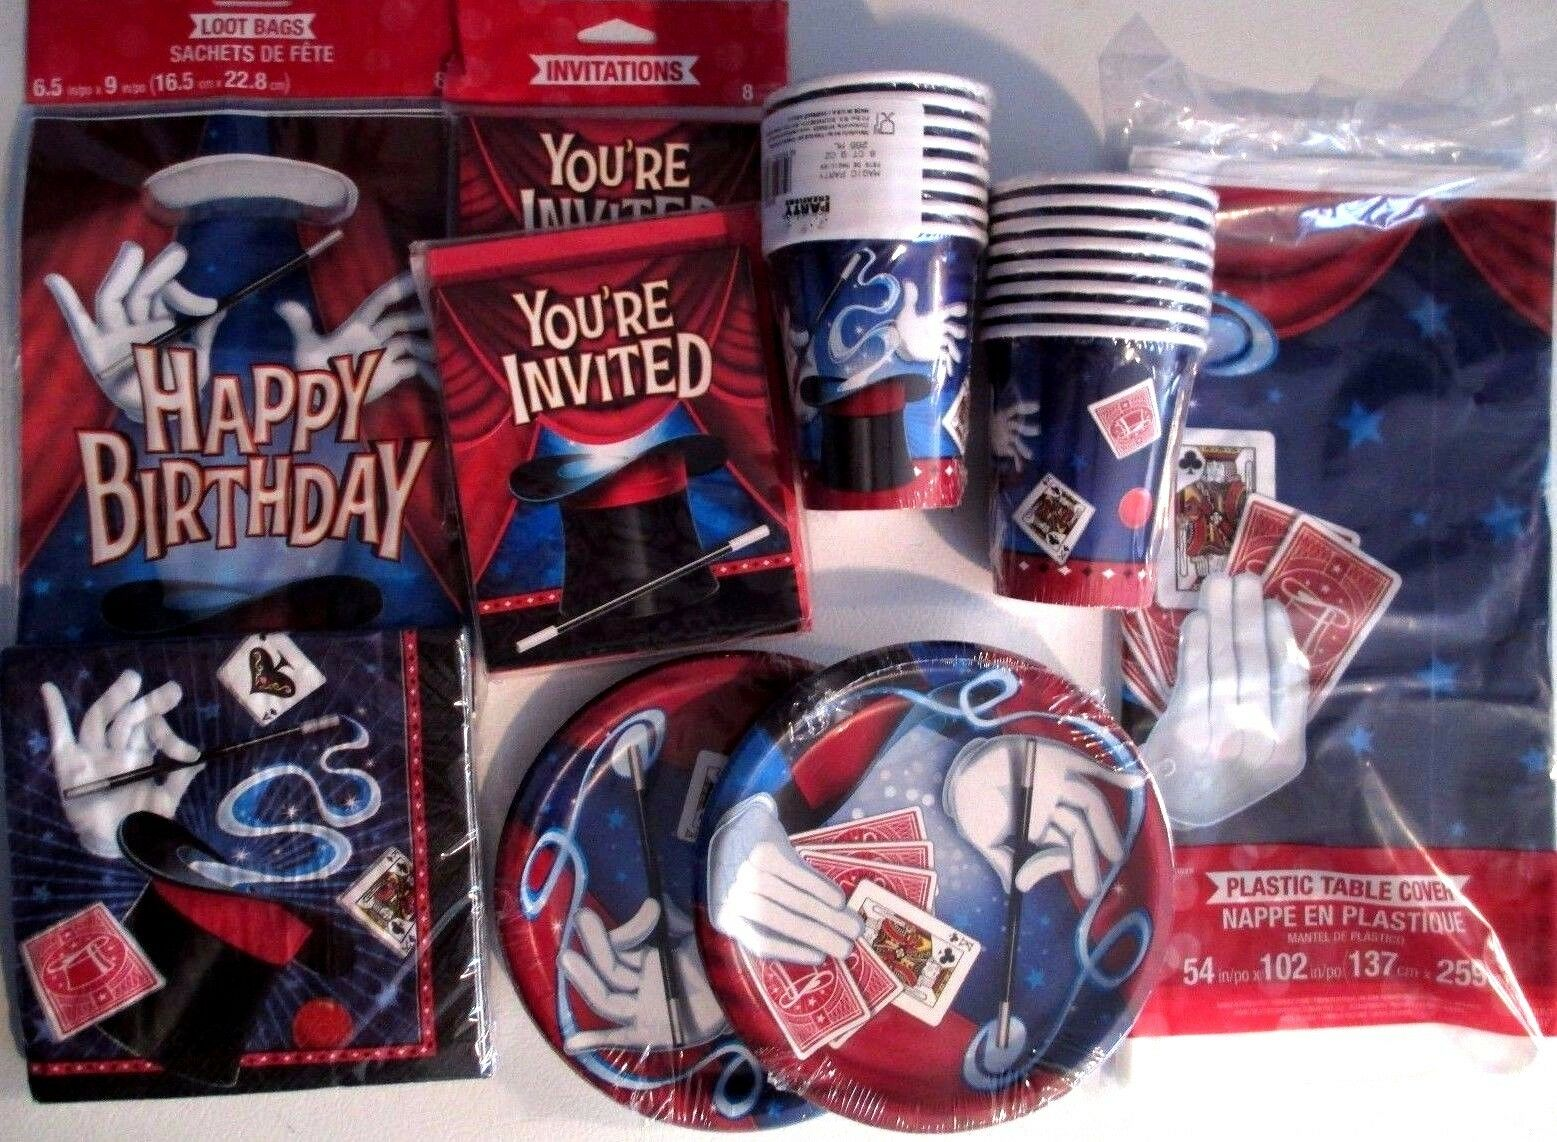 MAGIC Party Magician Birthday Party Supply DELUXE Kit w  Loot Bags & Invitations